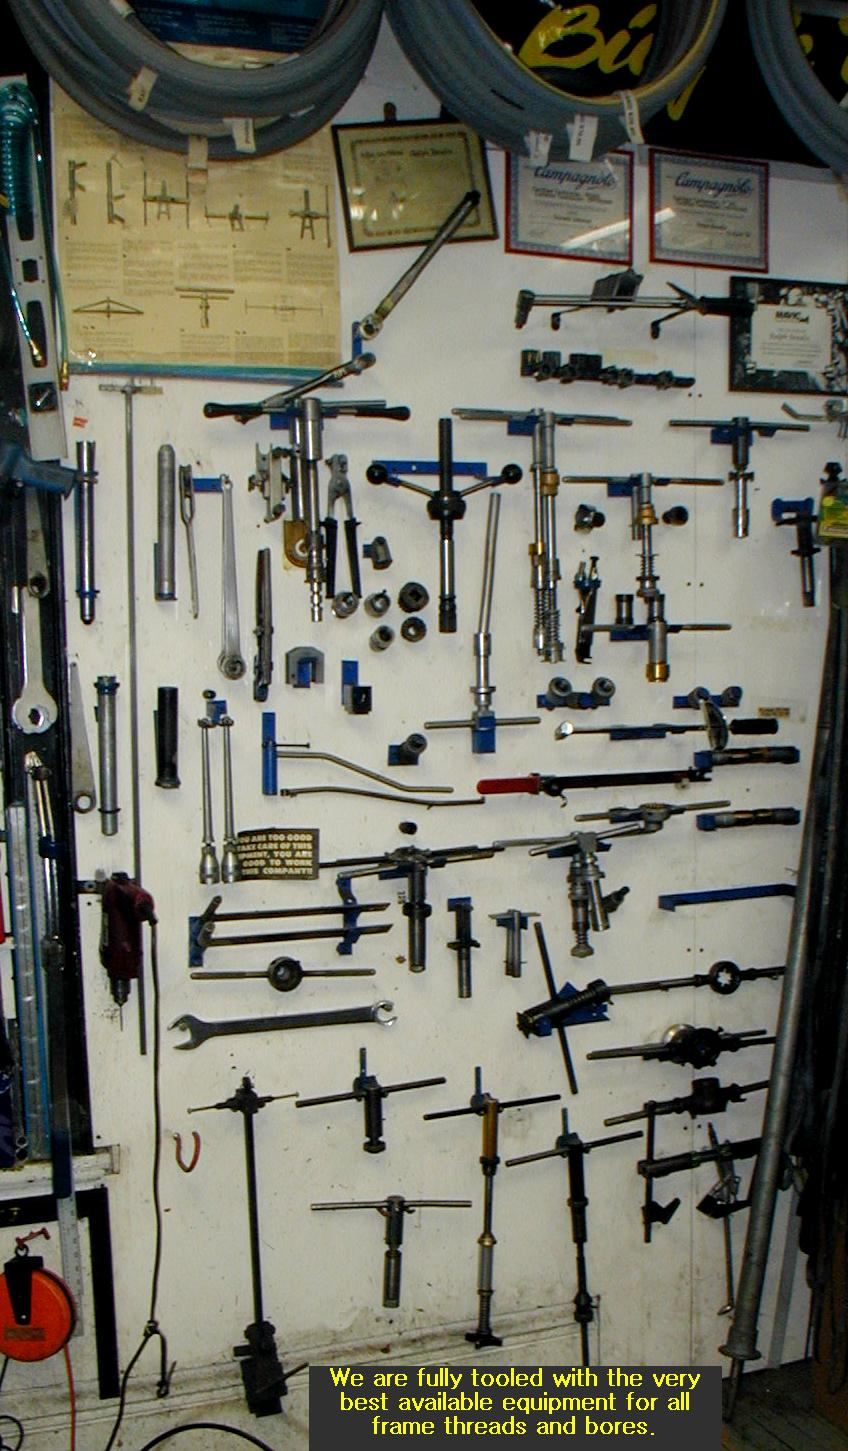 and there are many many banks of tool chests besides.